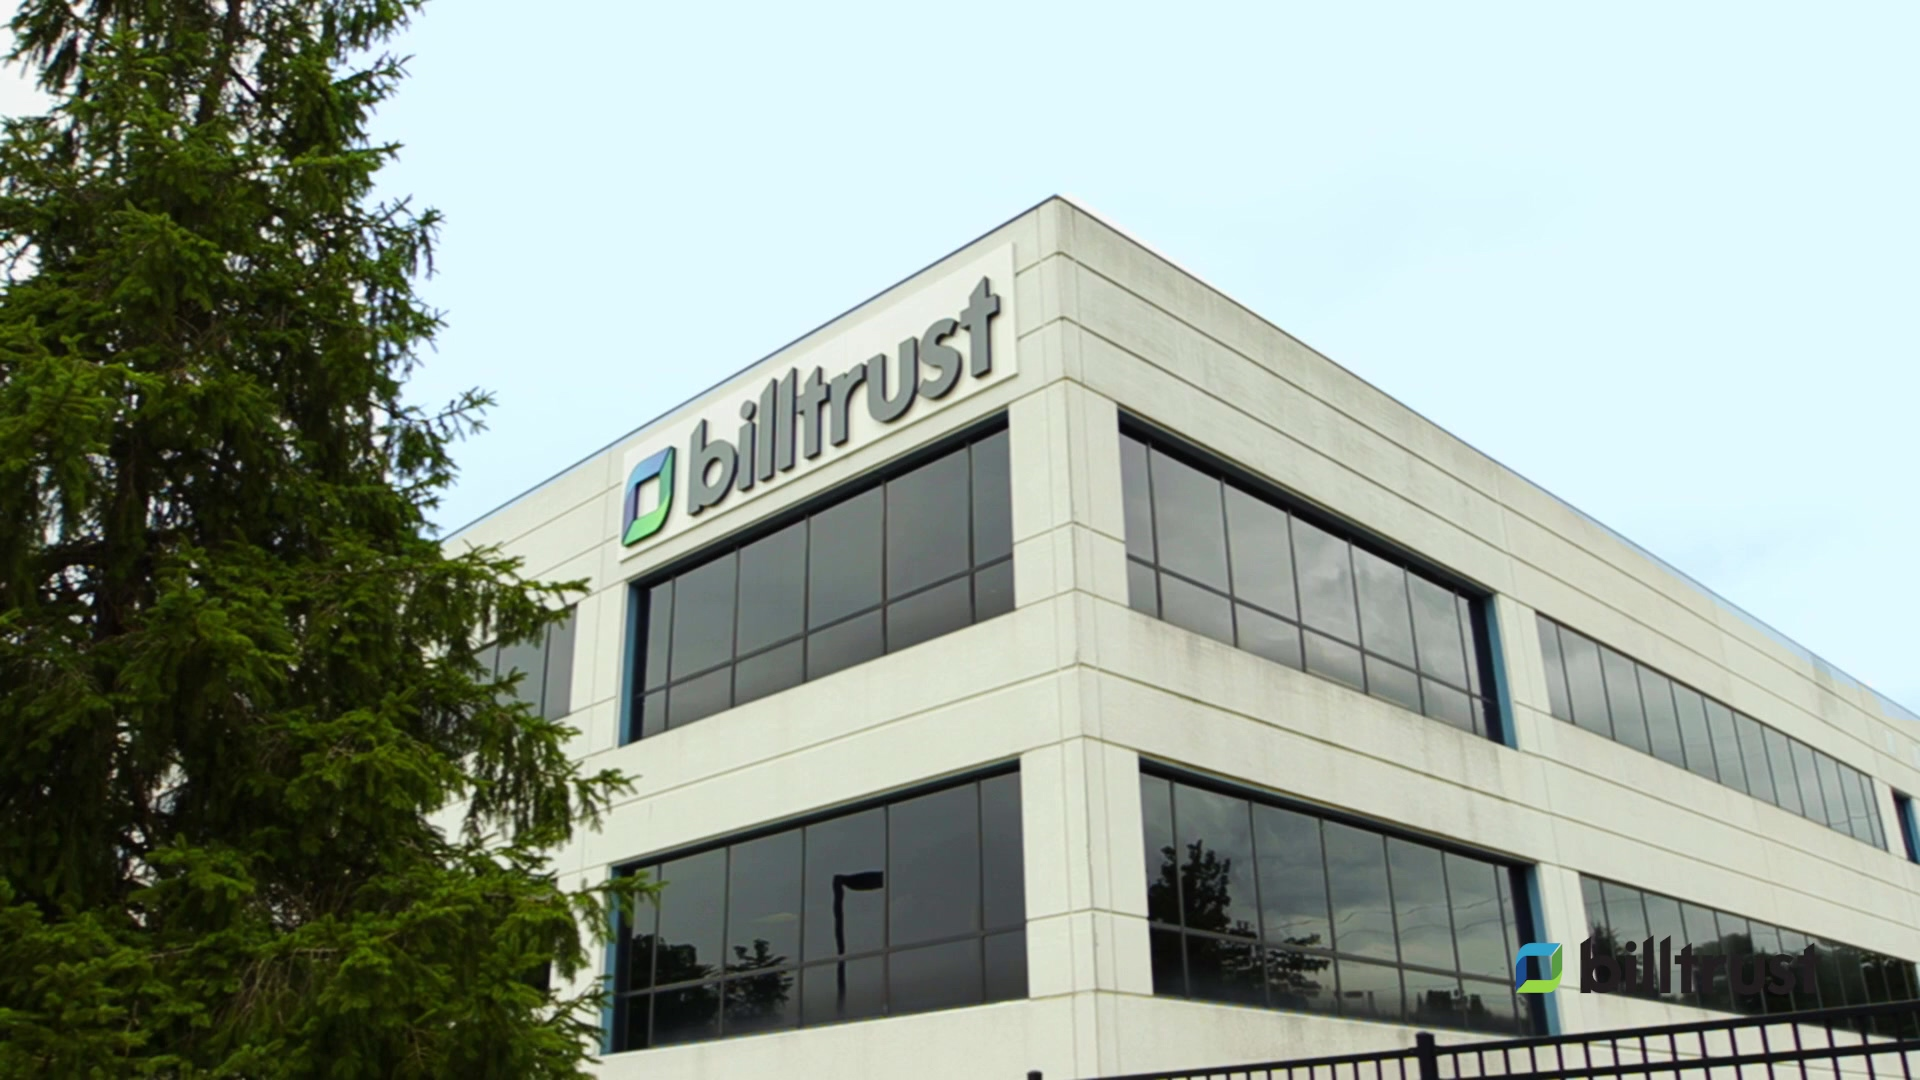 BILLTRUST_RECRUITMENT_V4.6